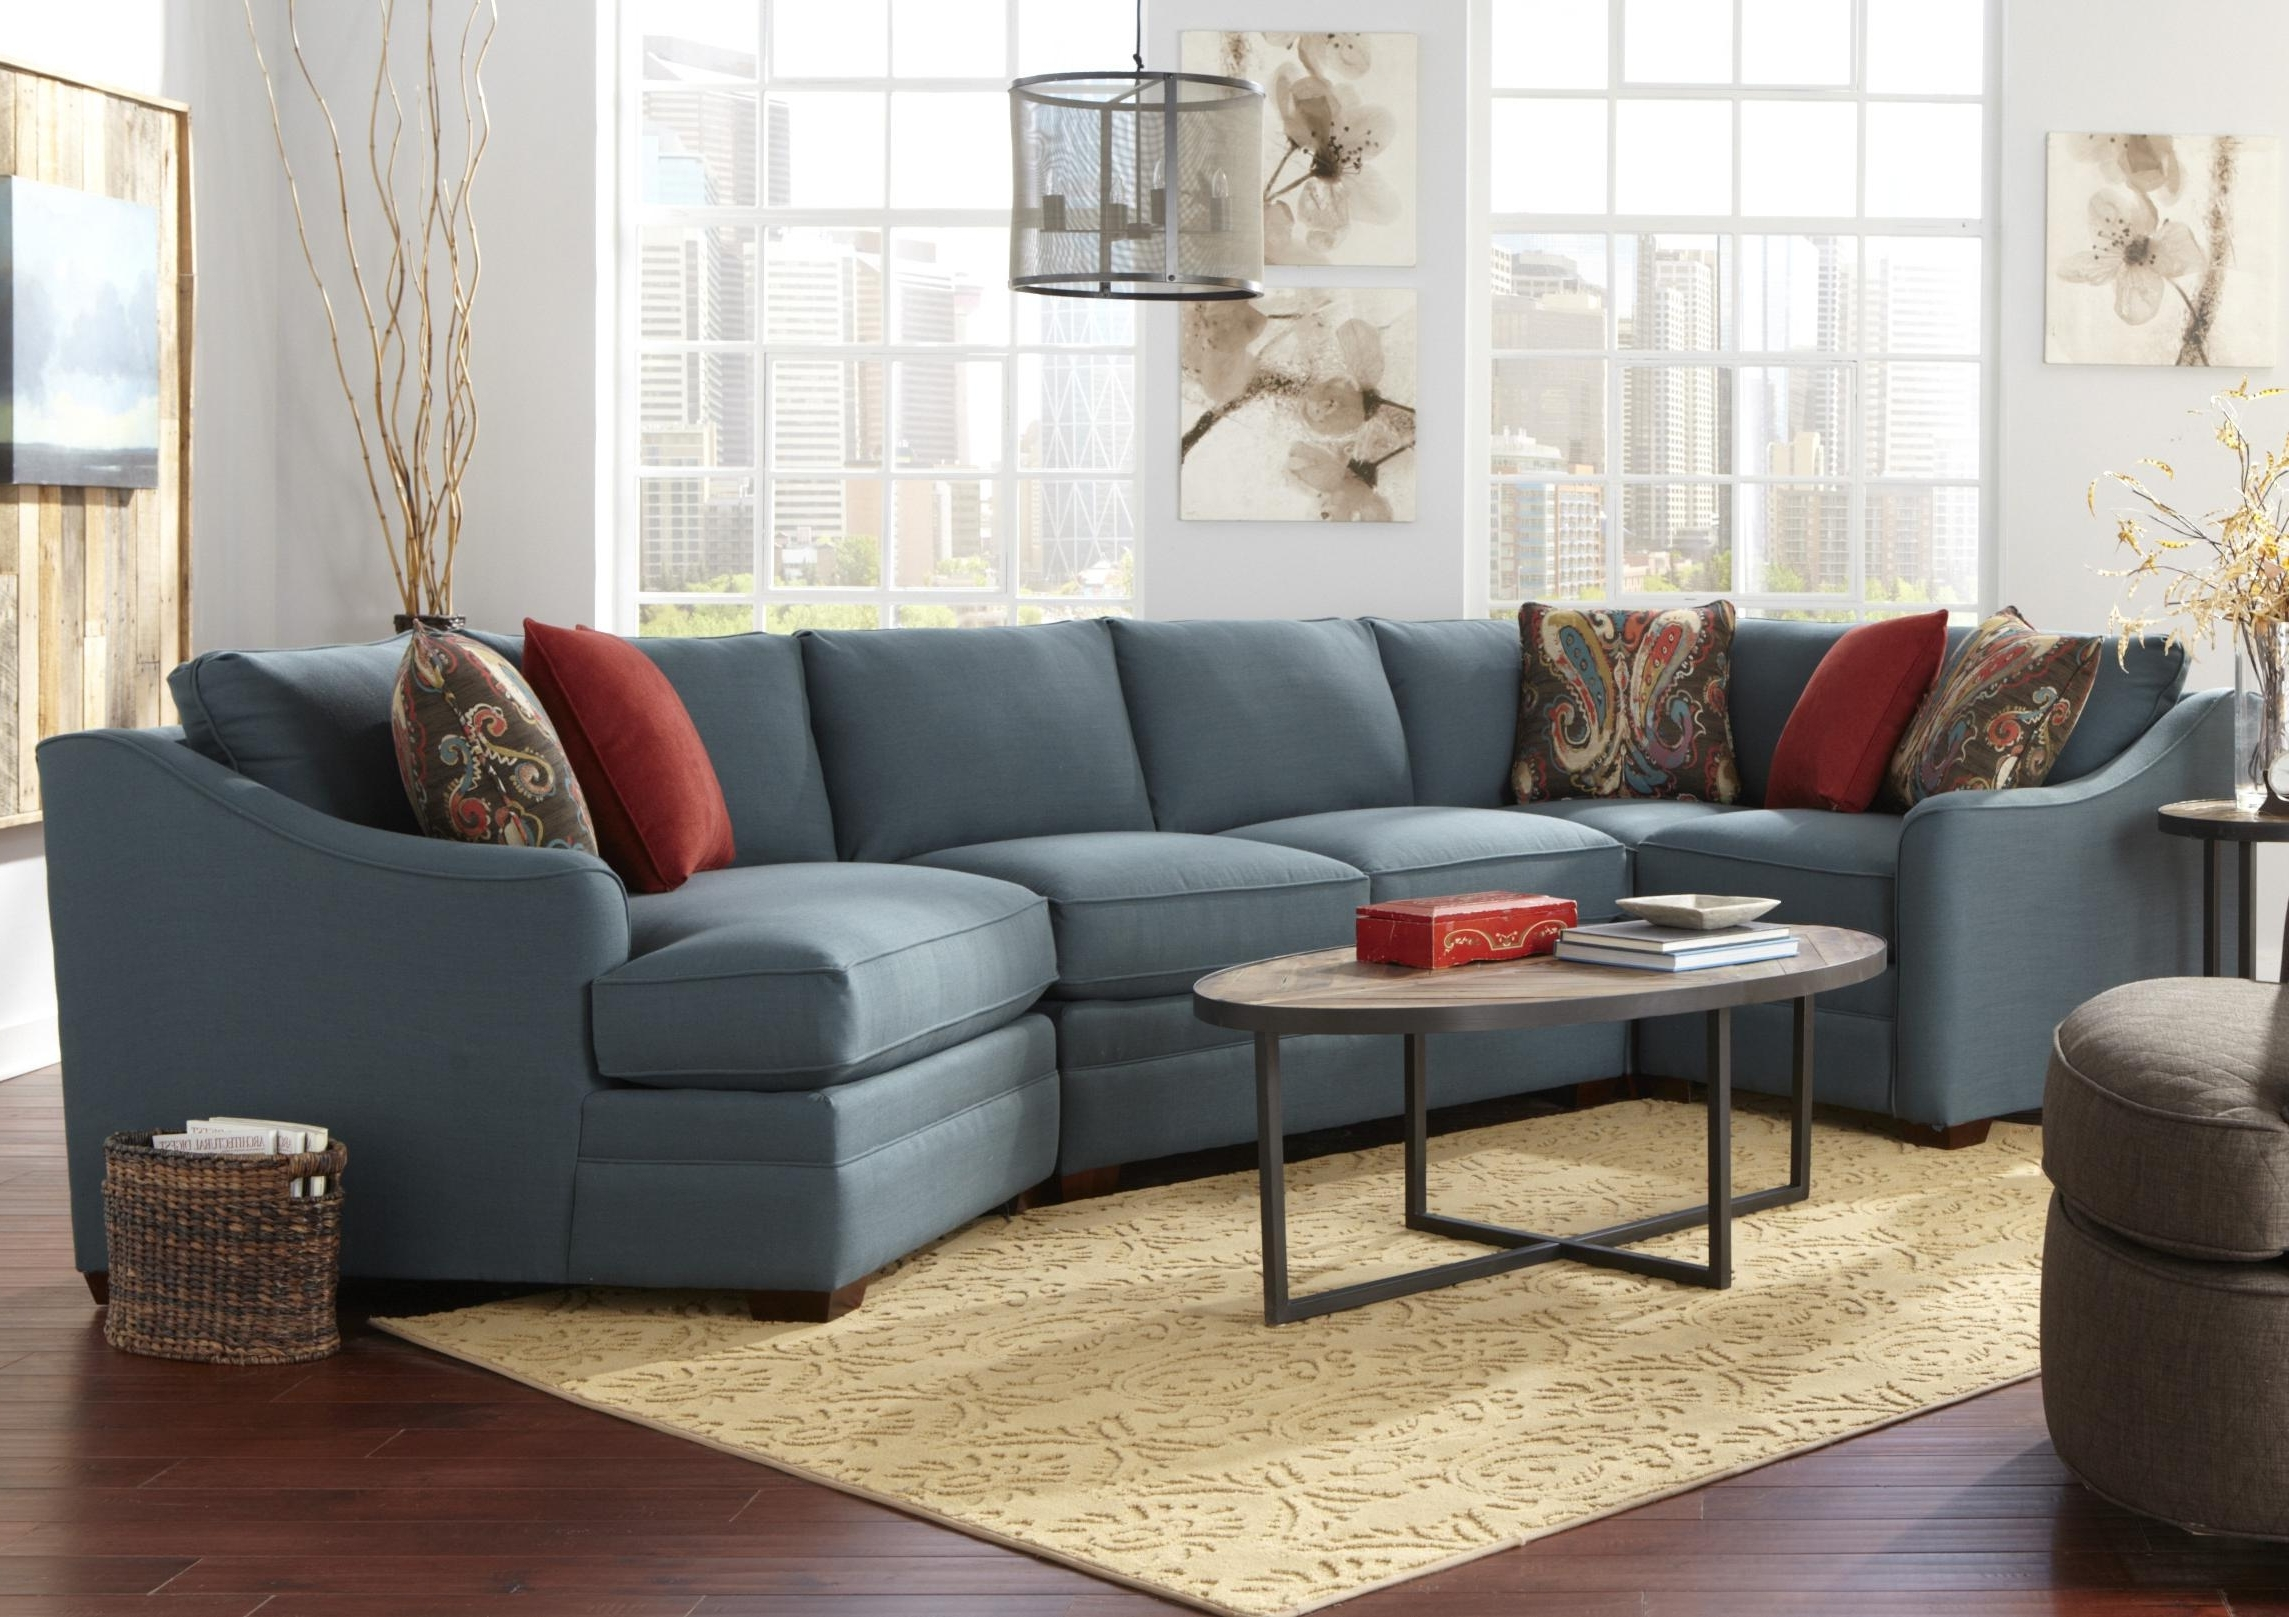 Fashionable Four Piece <B>Customizable</b> Sectional Sofa With Raf Cuddler Within Cuddler Chaises (View 6 of 15)